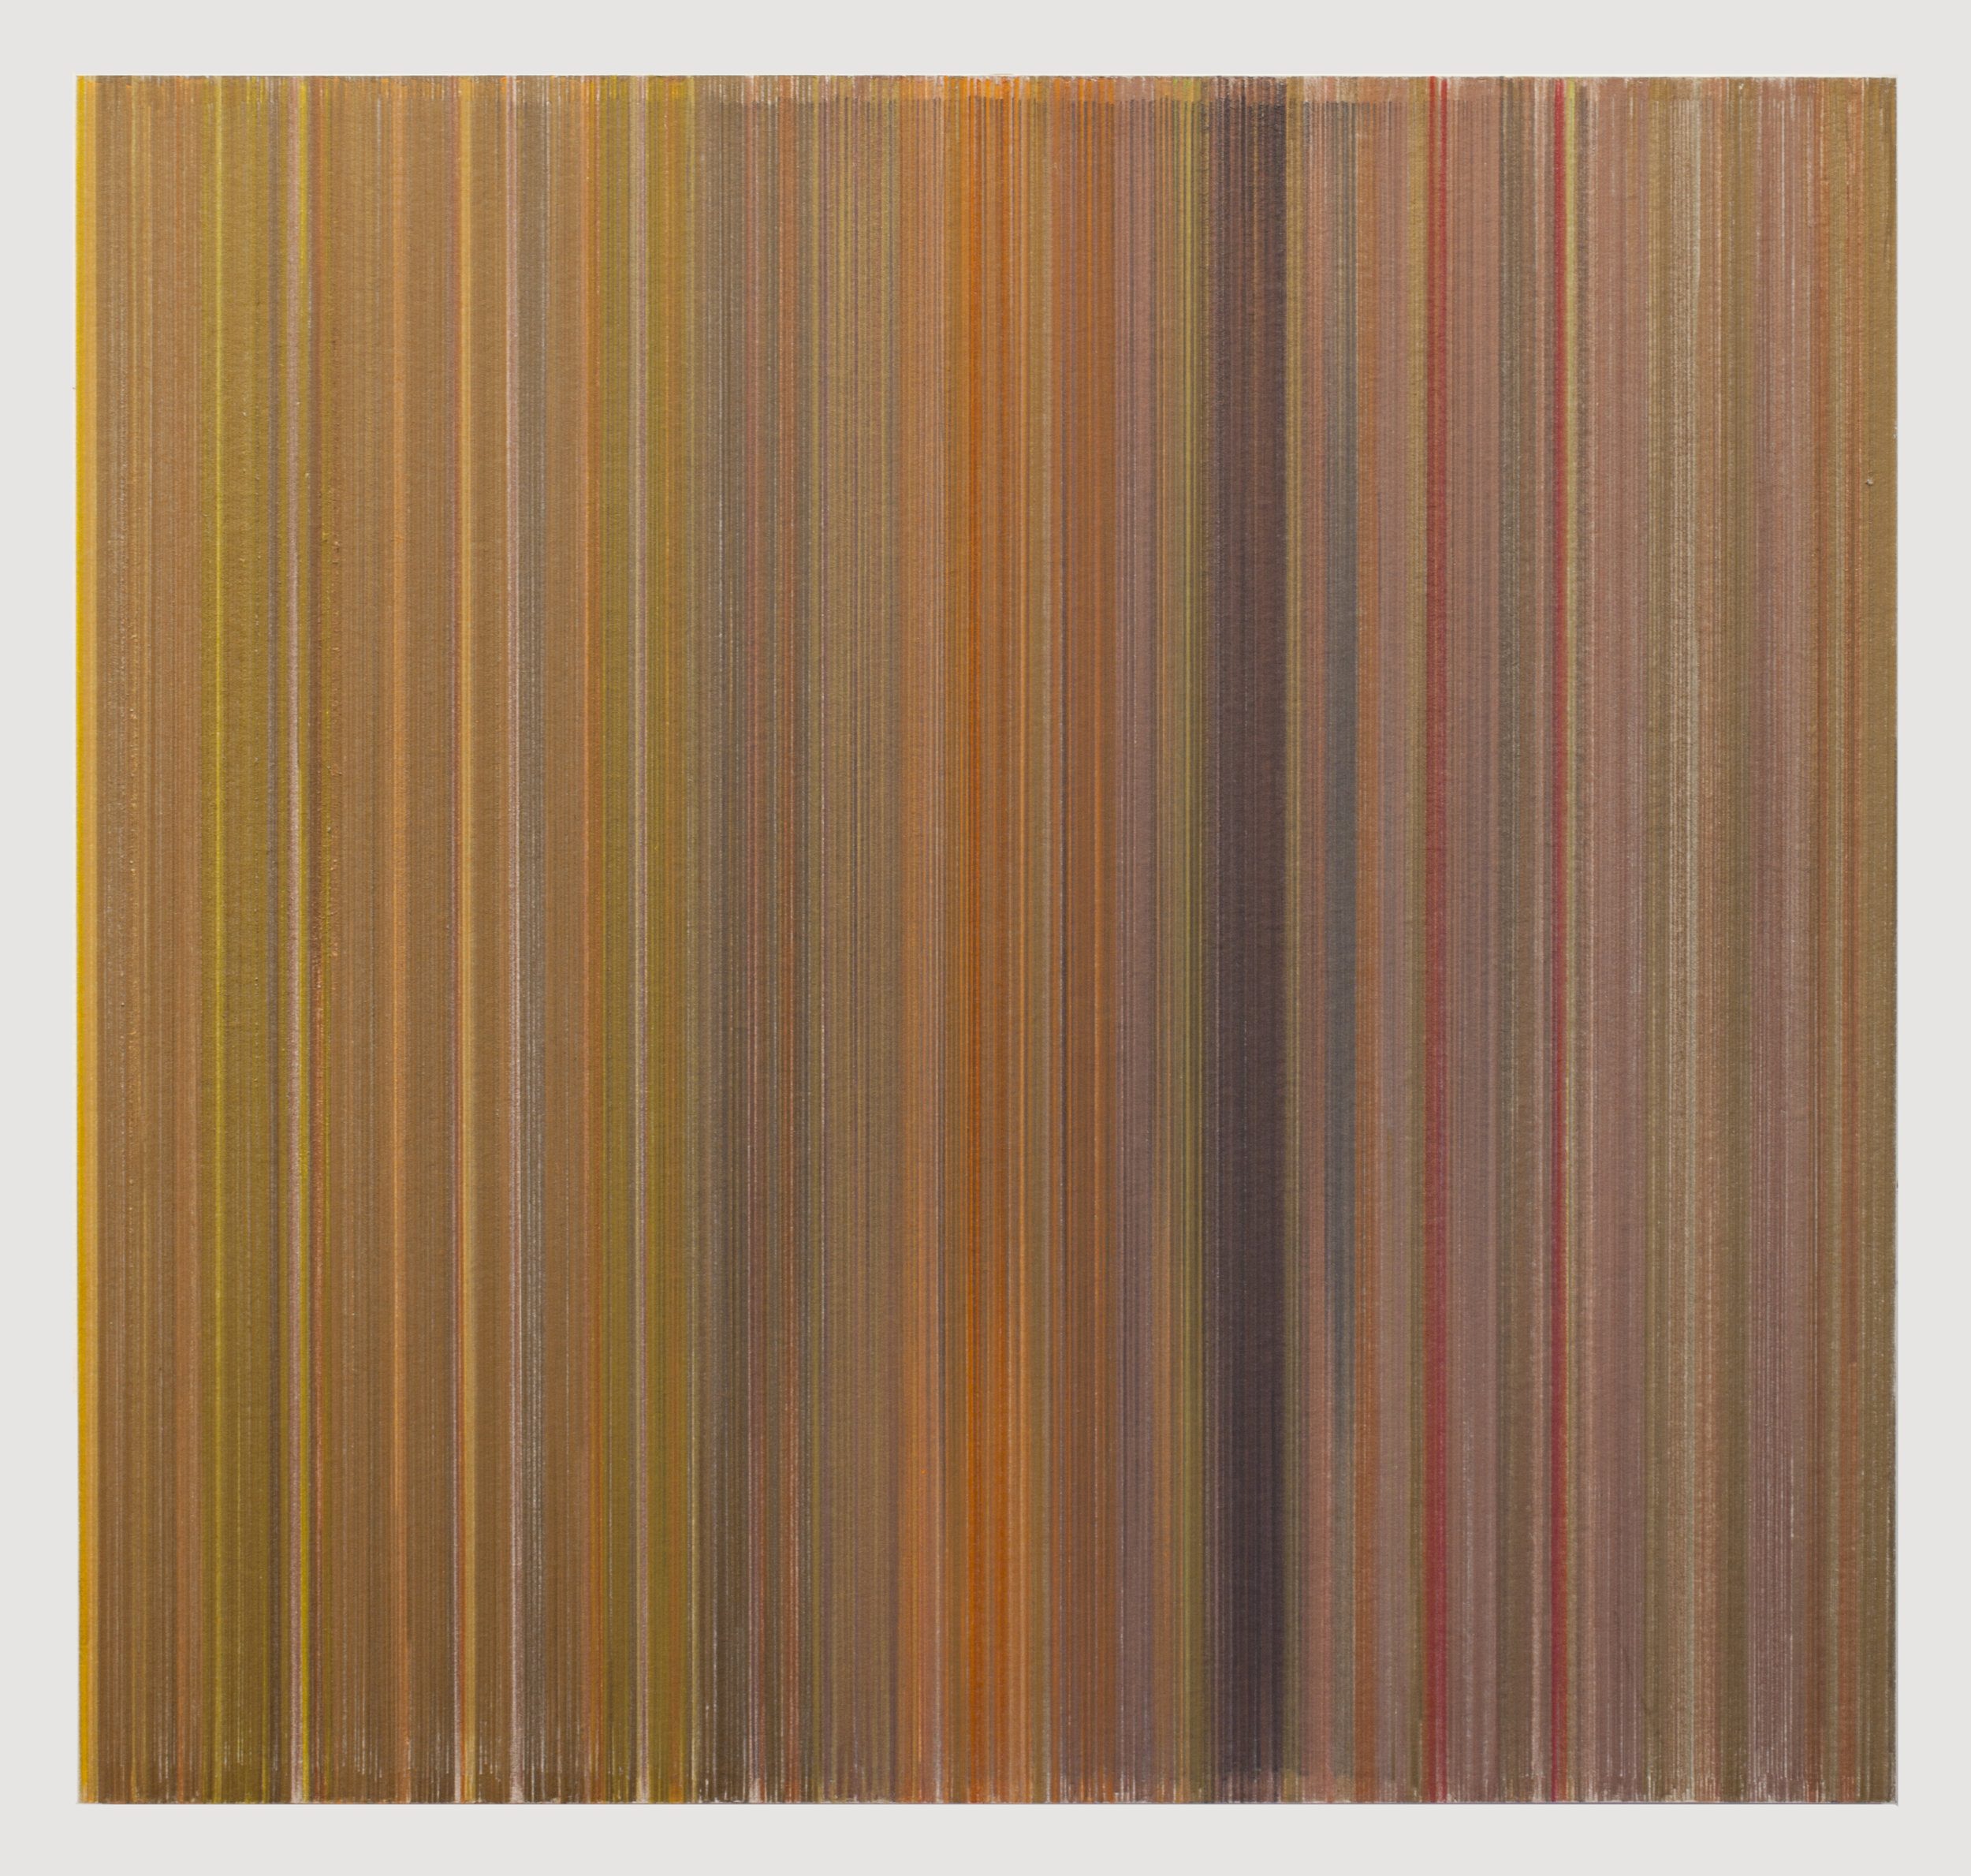 """vertigo  2017 graphite and colored pencil on mat board 19 by 18 inches title from poem by Alice Oswald """"         96              Normal   0           false   false   false     EN-US   X-NONE   X-NONE                                                                                                                                                                                                                                                                                                                                                                                                                                                                                                                                                                                                                                                                                                                                                                                                                                                                                     /* Style Definitions */ table.MsoNormalTable {mso-style-name:""""Table Normal""""; mso-tstyle-rowband-size:0; mso-tstyle-colband-size:0; mso-style-noshow:yes; mso-style-priority:99; mso-style-parent:""""""""; mso-padding-alt:0in 5.4pt 0in 5.4pt; mso-para-margin:0in; mso-para-margin-bottom:.0001pt; mso-pagination:widow-orphan; font-size:12.0pt; font-family:Calibri; mso-ascii-font-family:Calibri; mso-ascii-theme-font:minor-latin; mso-hansi-font-family:Calibri; mso-hansi-theme-font:minor-latin;}              96              Normal   0           false   false   false     EN-US   X-NONE   X-NONE                                                                                                                                                                                                                                                                                                                                                                           """